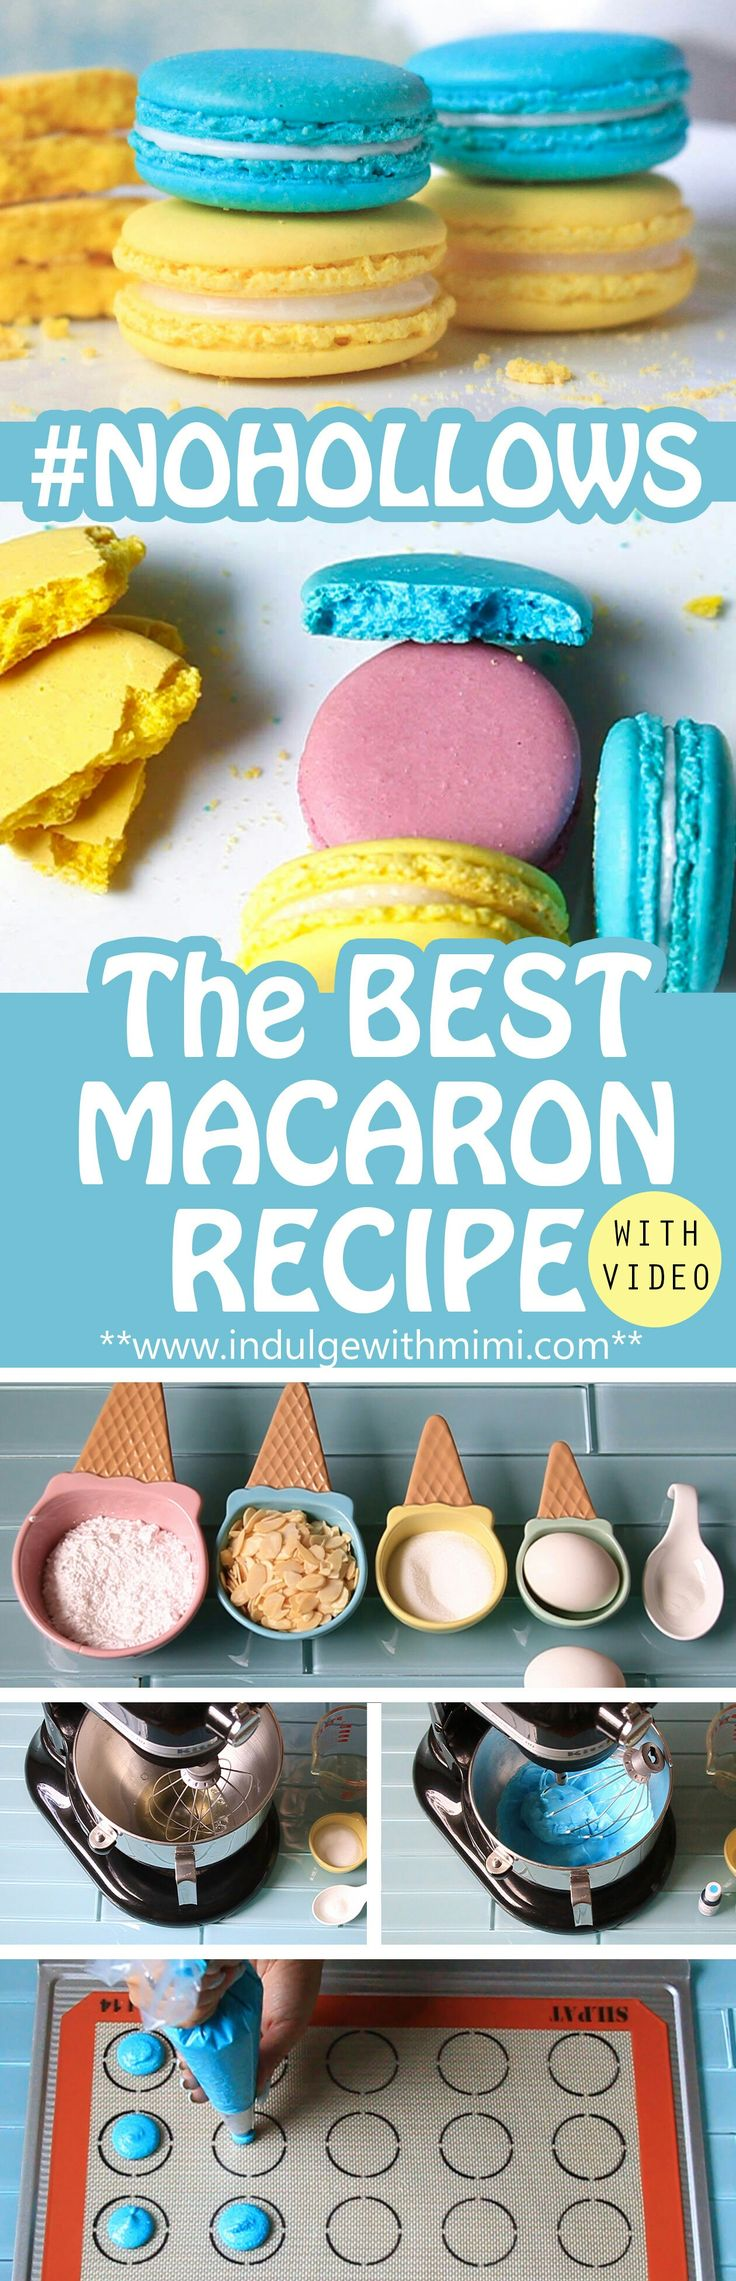 The Best Macaron Recipe with detailed instructions and video tutorial showing you key visual markers at each stage.